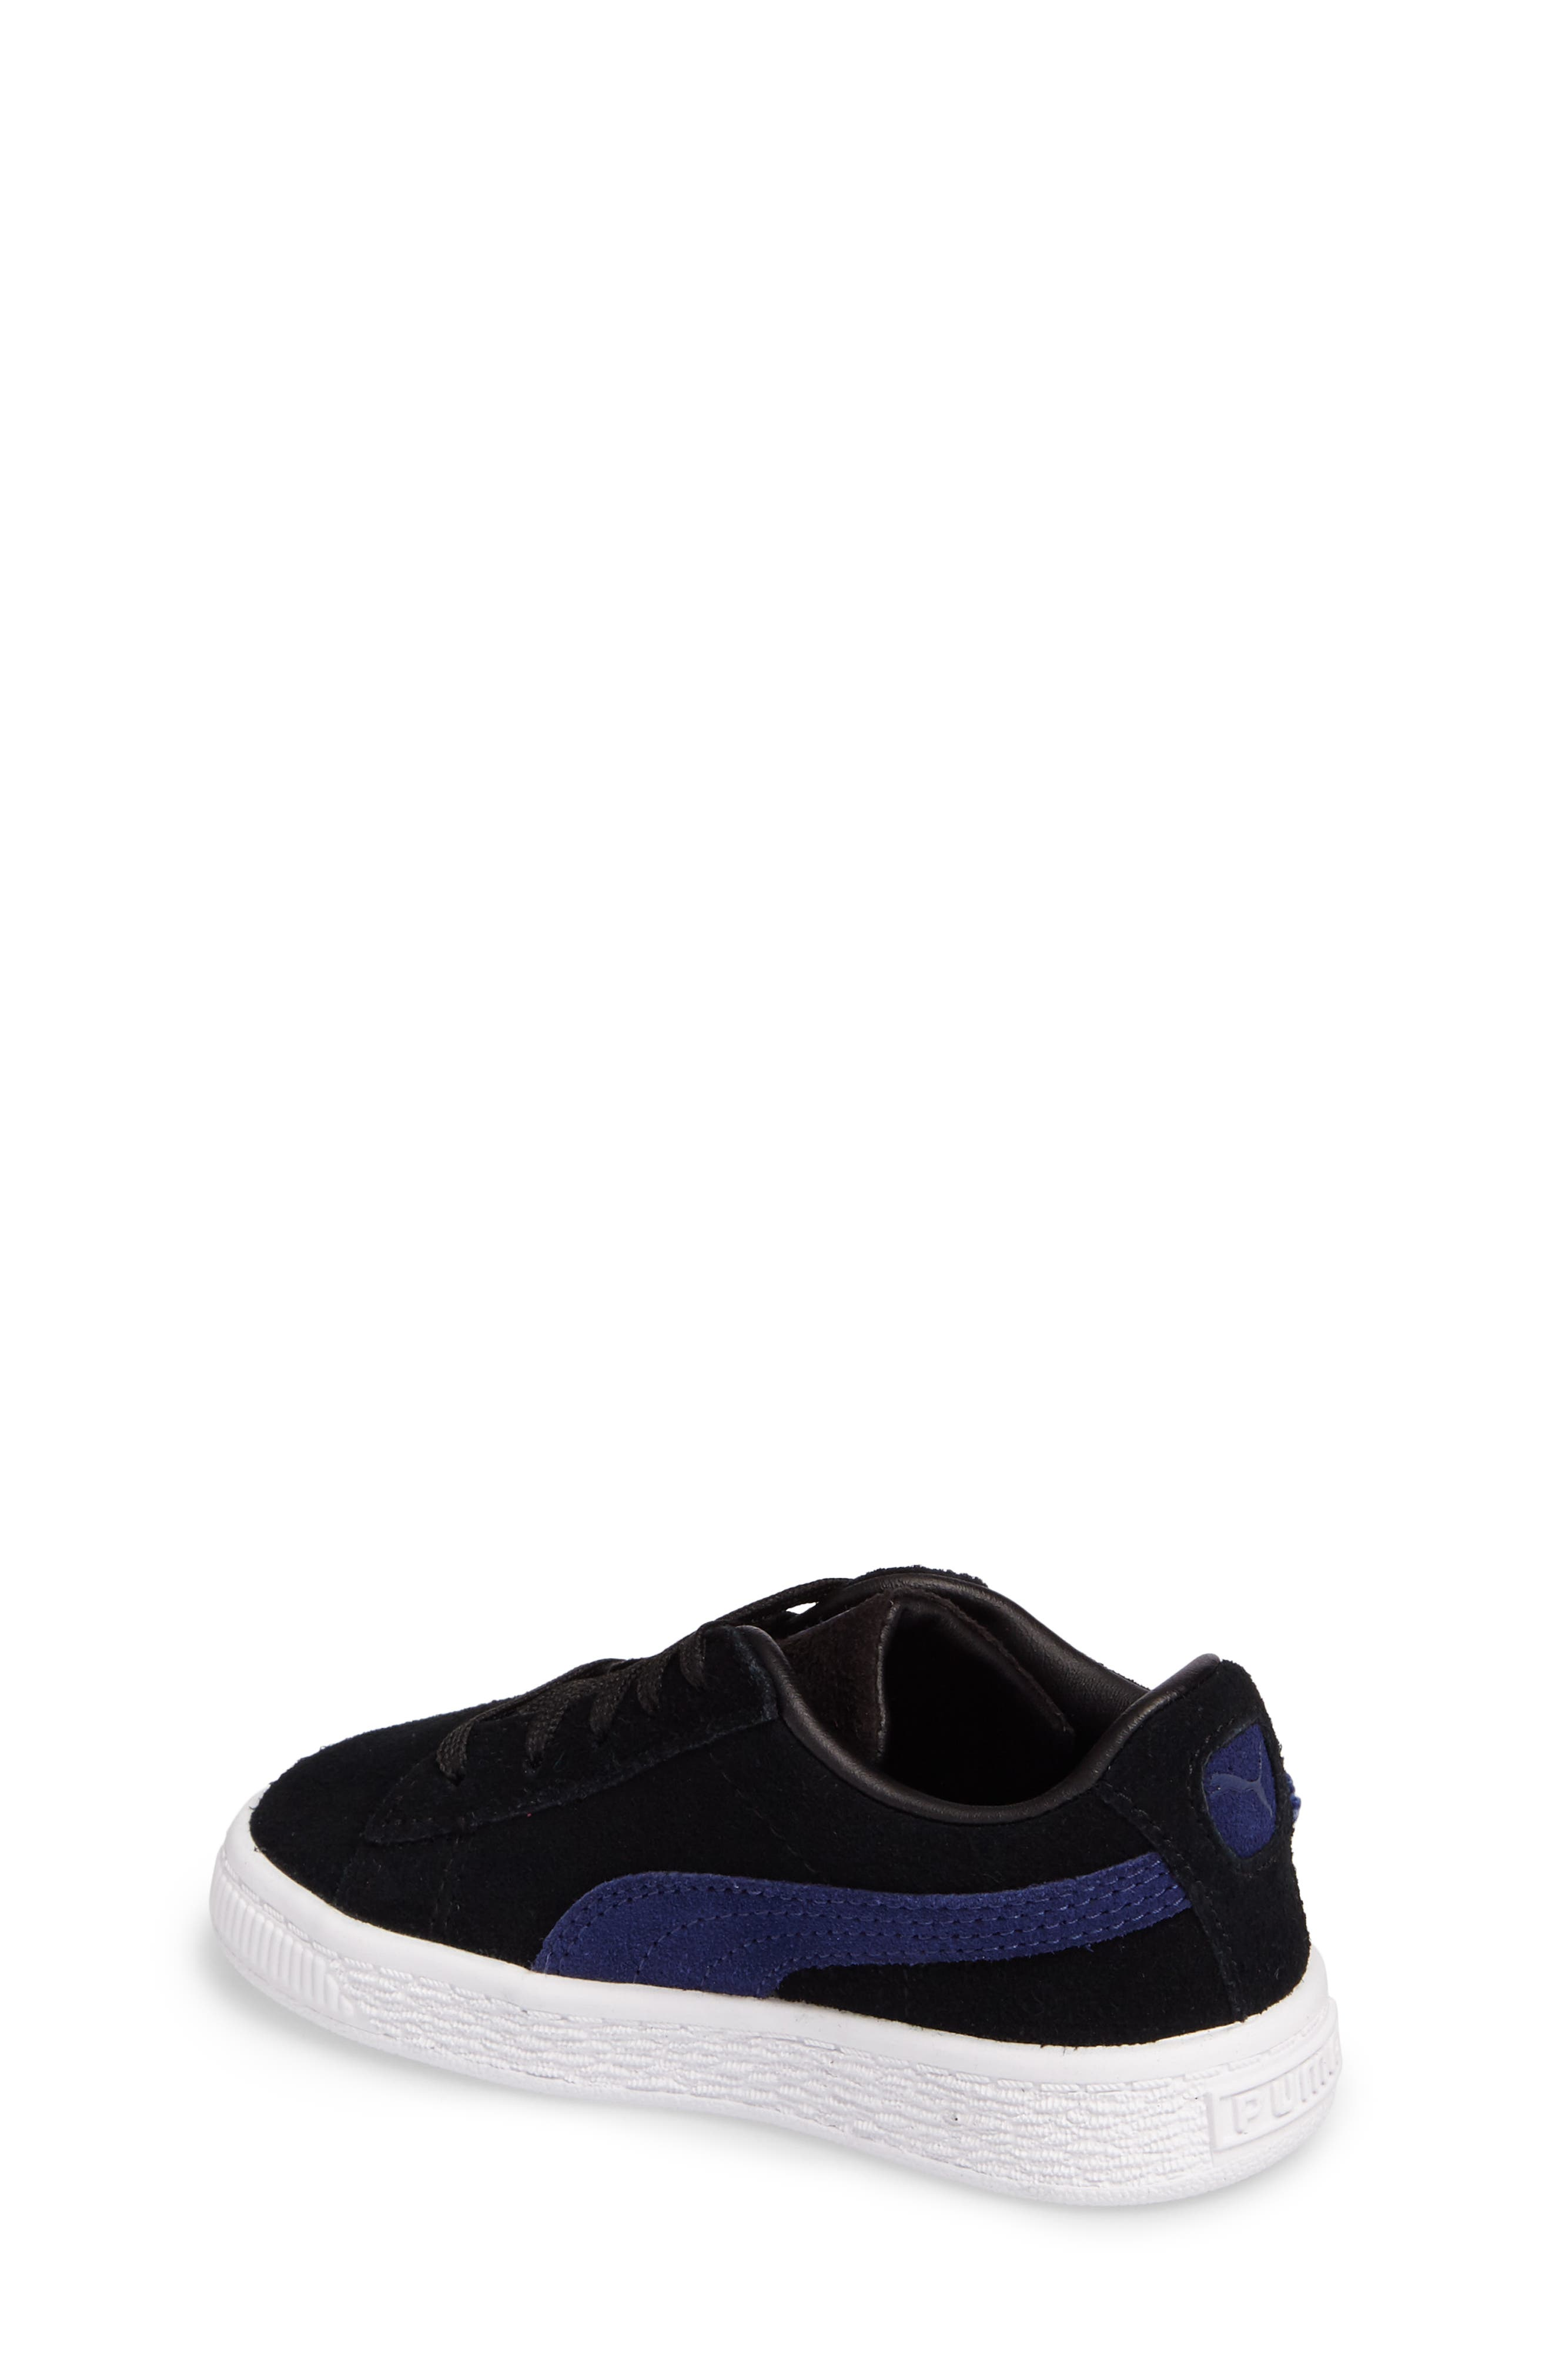 Alternate Image 2  - PUMA Classic Terry Sneaker (Baby, Walker & Toddler)